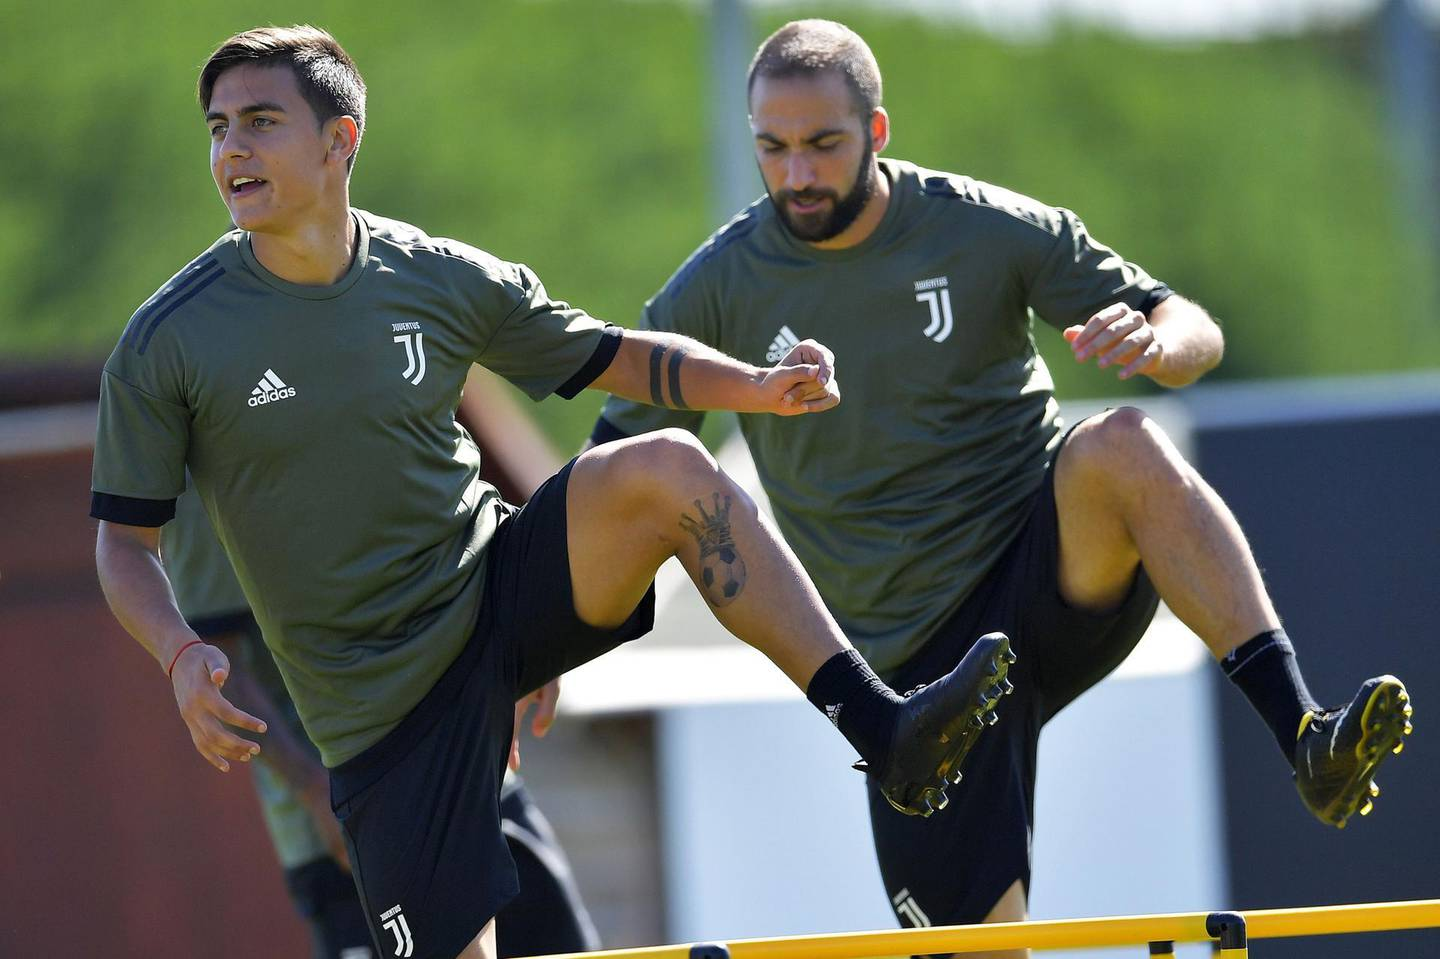 Juventus' forward Paulo Dybala (L) from Argentina and Juventus' forward Gonzalo Higuain from Argentina take part in a training session on the eve of the UEFA Champions League football match Barcelona vs Juventus on September 11, 2017 in Vinovo, near Turin. / AFP PHOTO / Marco BERTORELLO